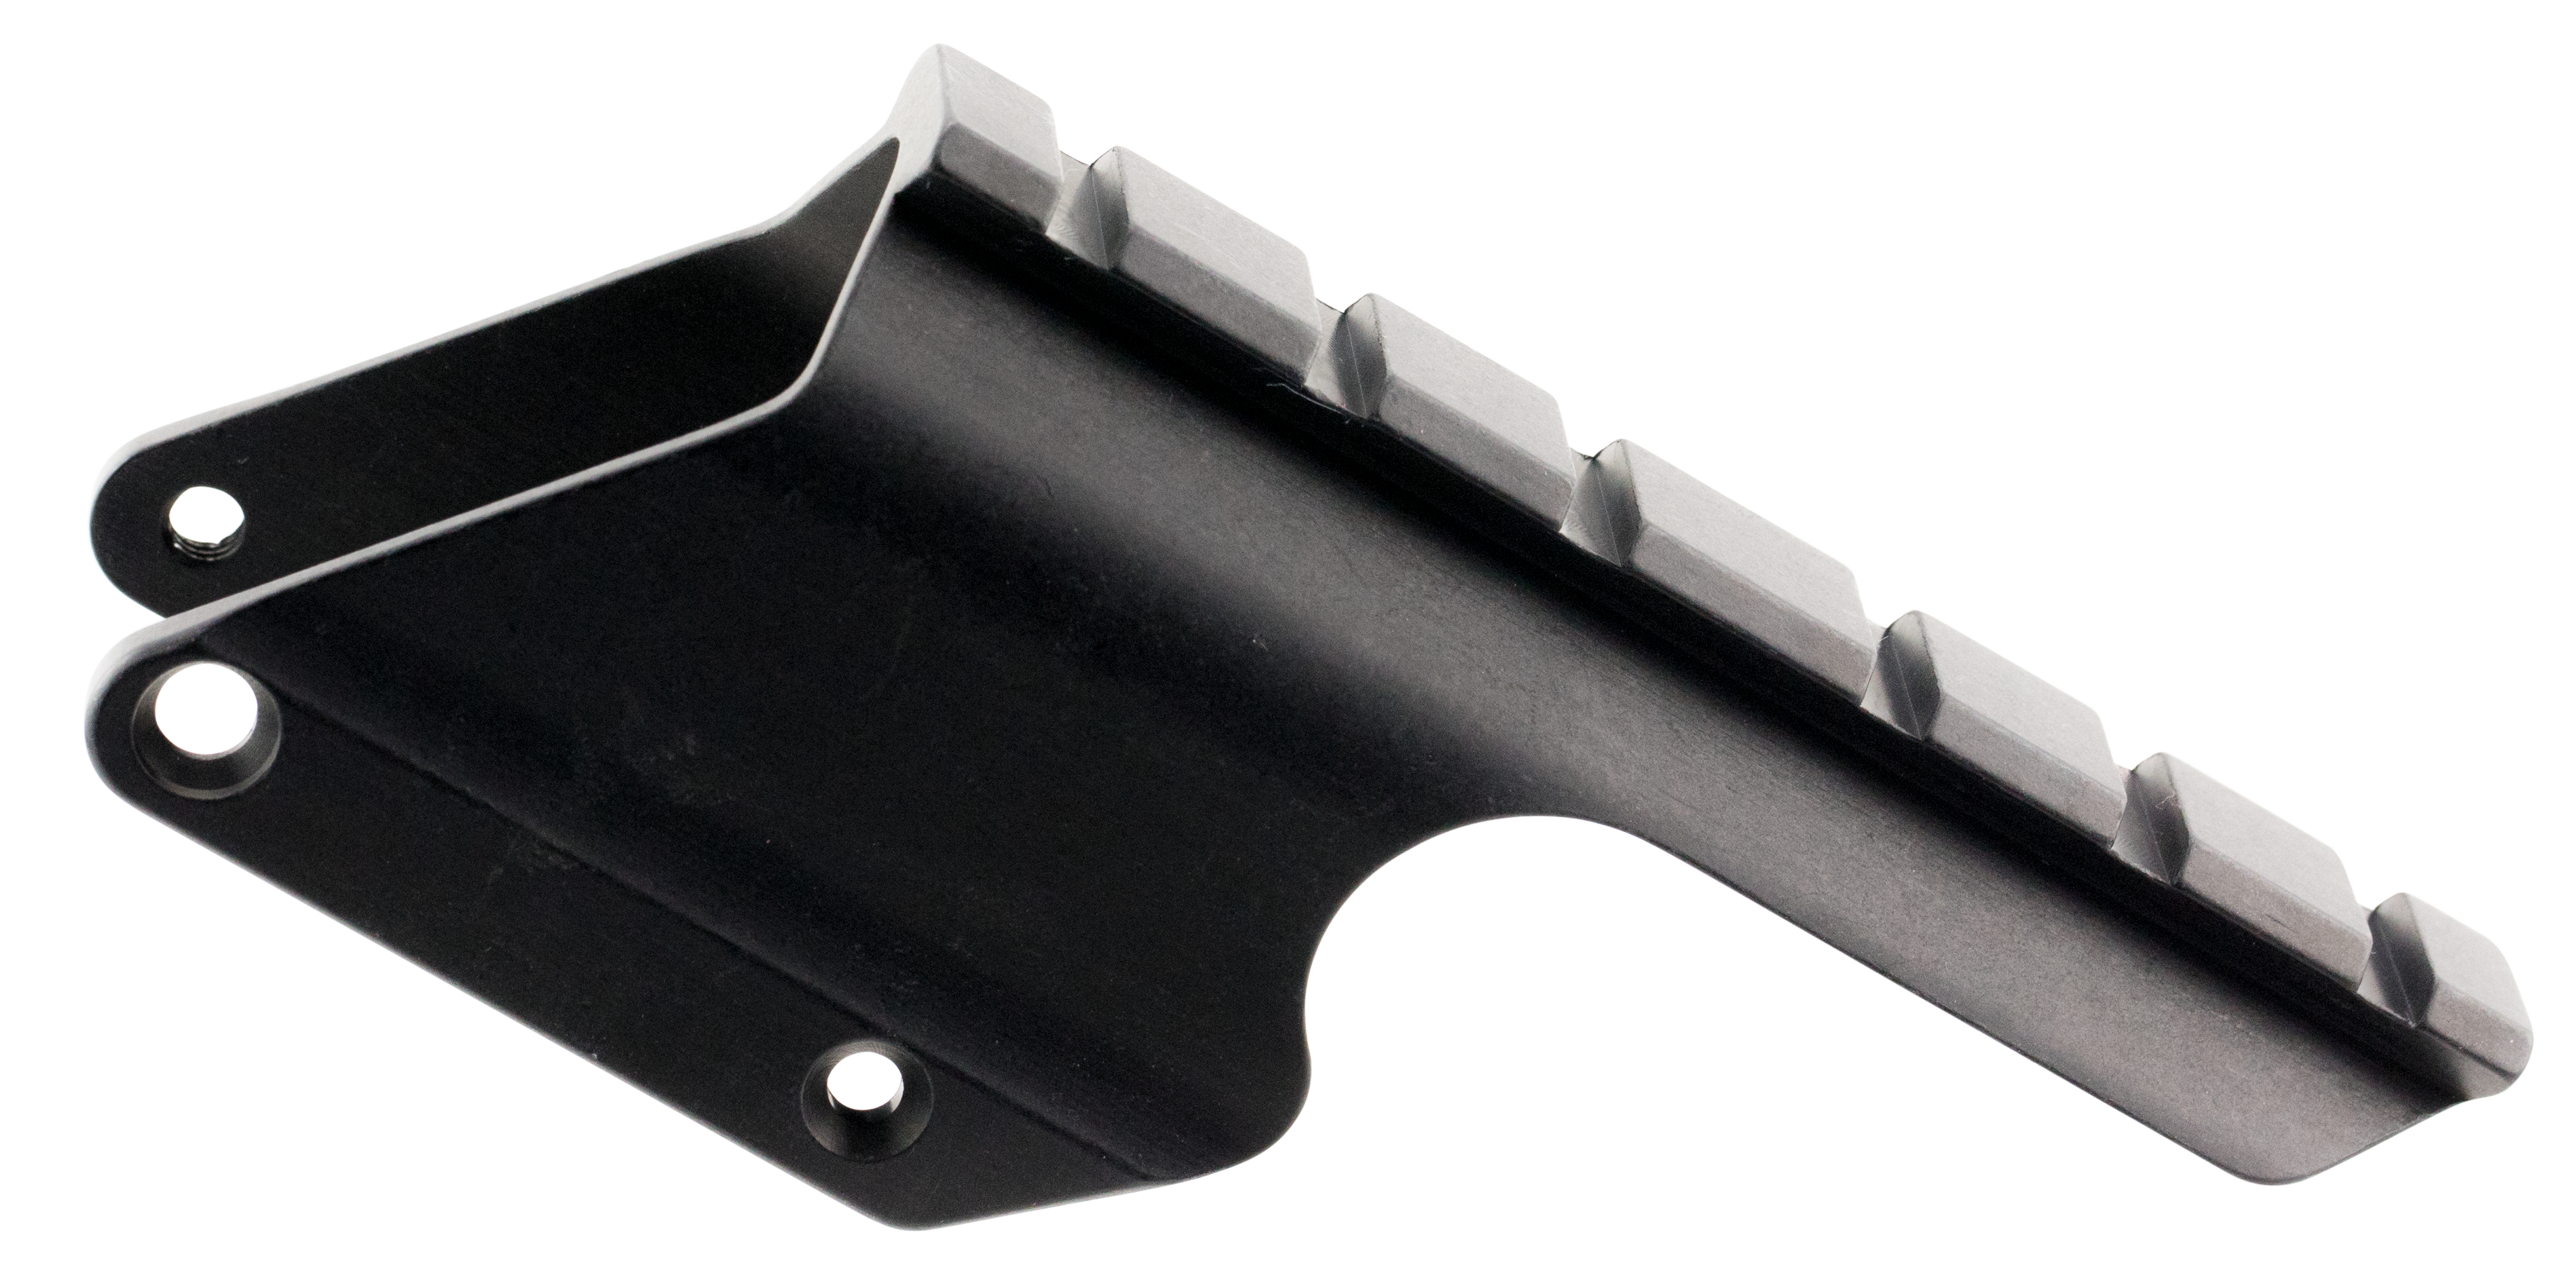 Aimtech ASM2M35 Scope Mount For Remington 870 12 Gauge Dovetail Style Black Hard Coat Anodized Finish 3.5